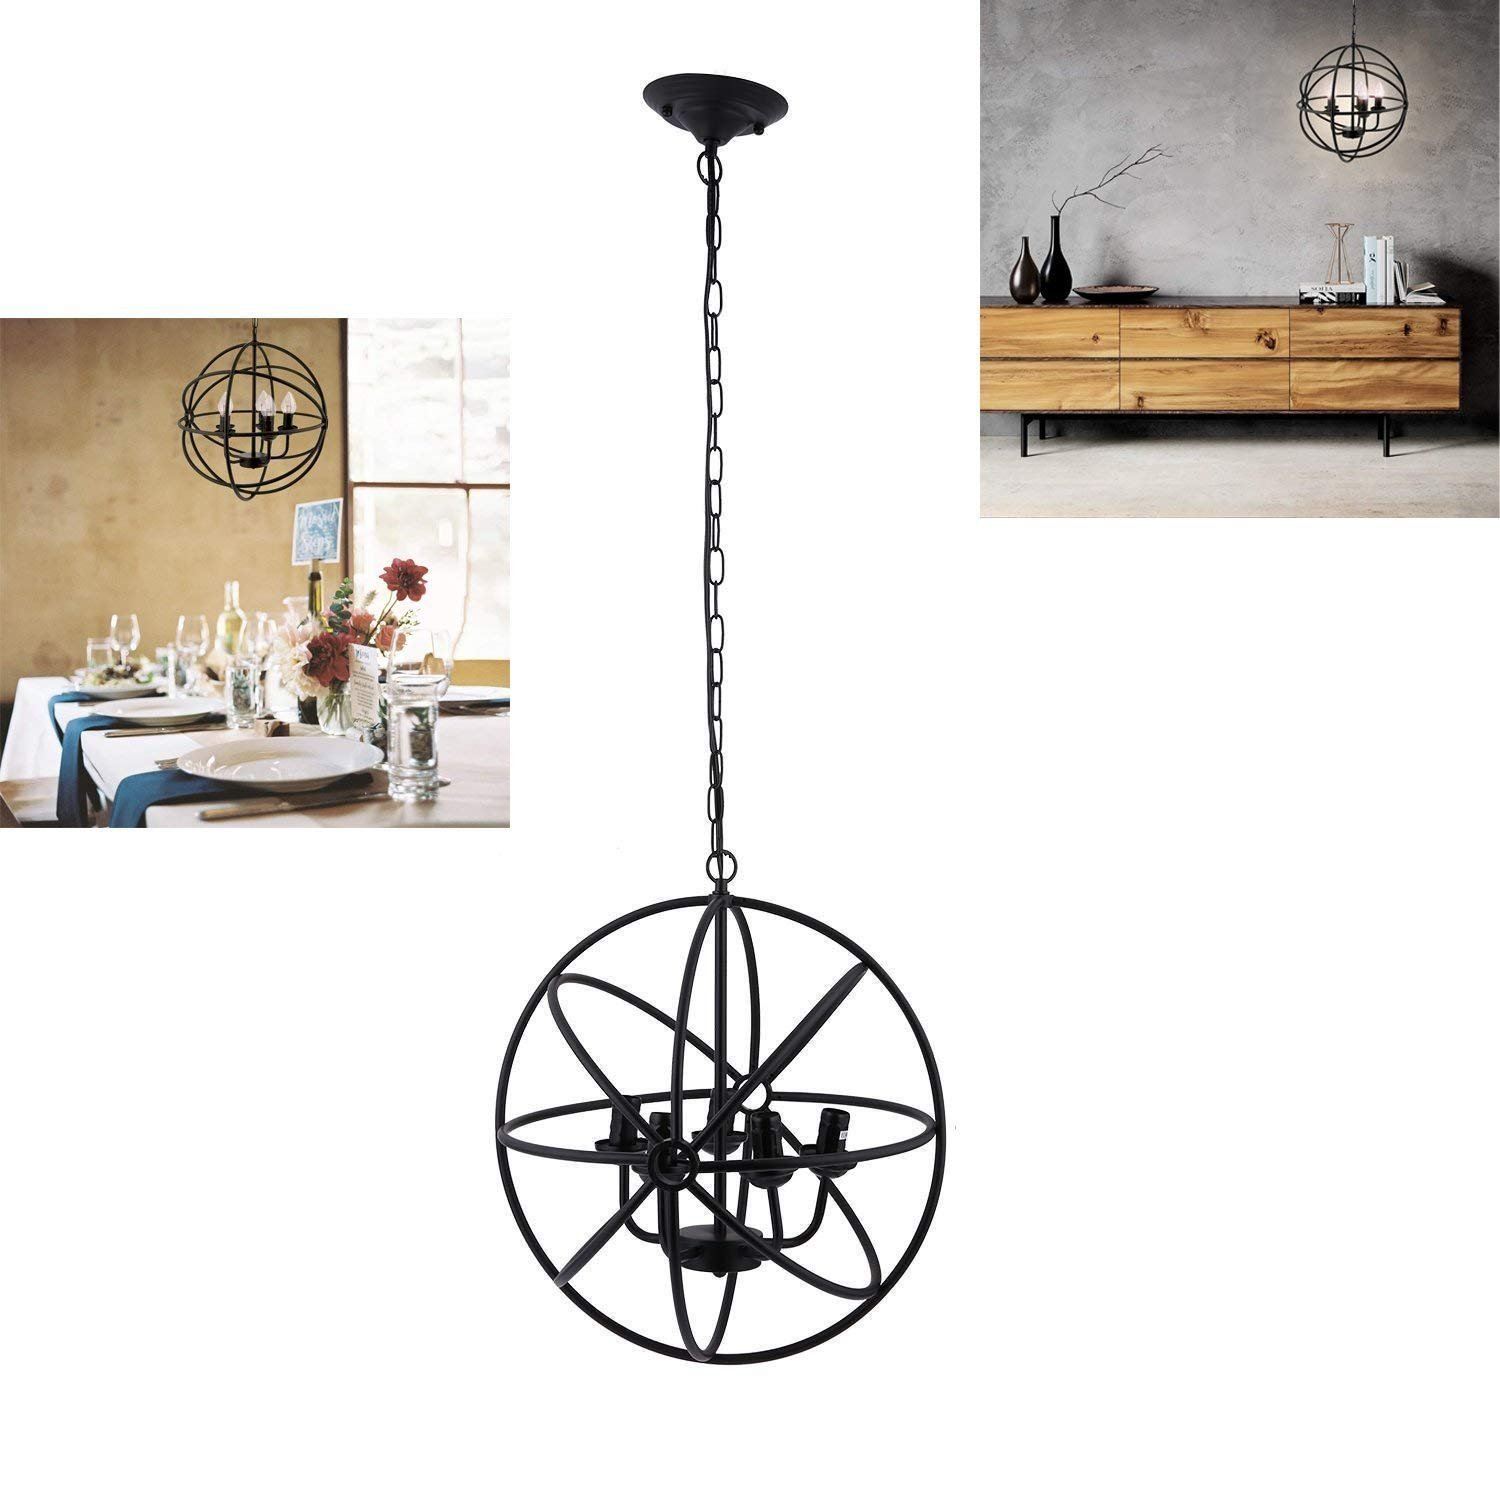 Hindom Industrial Vintage Lighting Ceiling Chandelier 5 Lights Metal Hanging Fixture, Black Rustic Retro Globe Style Indoor Chandelier Finish,Oil Rubbed Bronze with Highlights